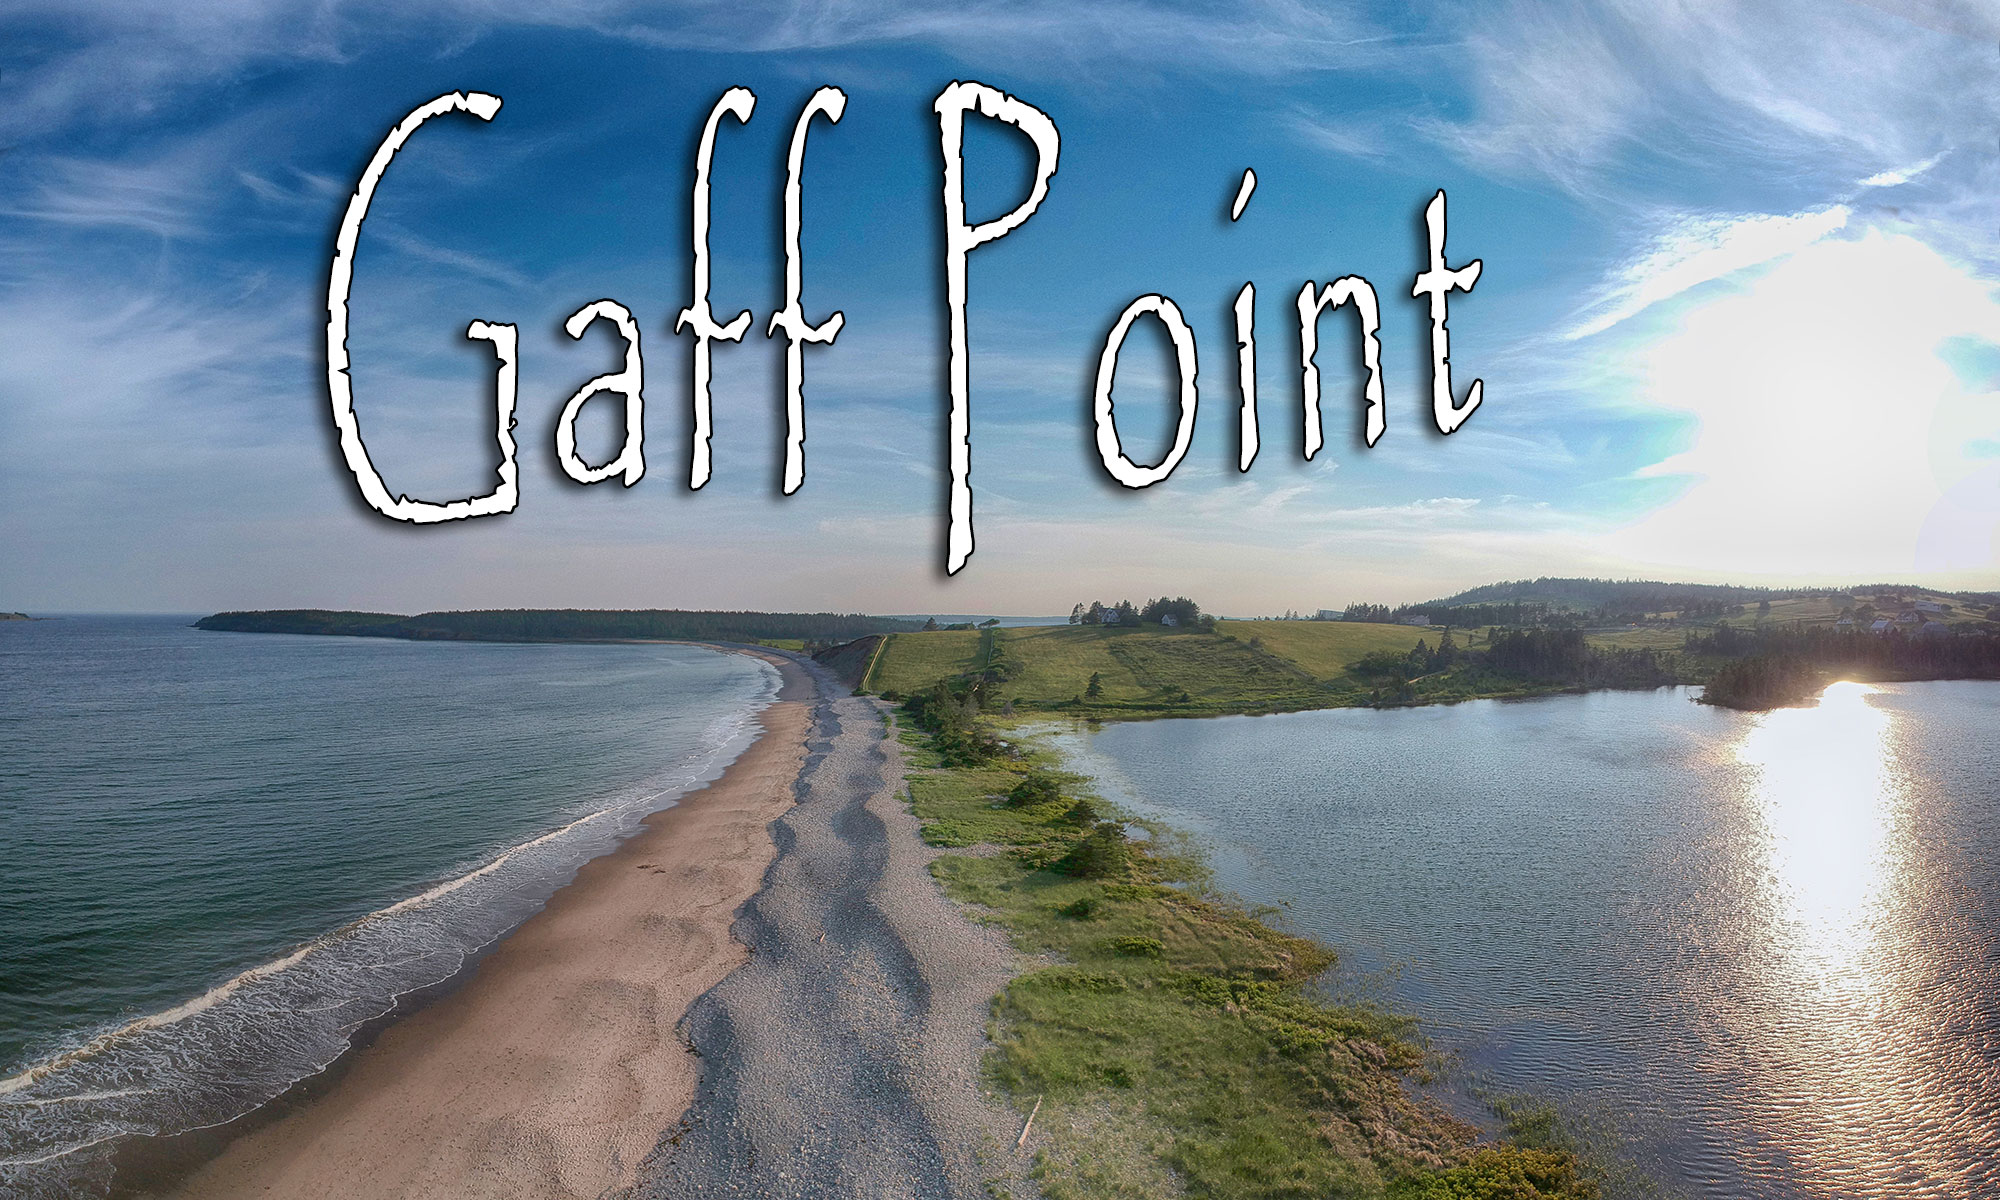 gaff point hiking trail hirtles beach lunenburg nova scotia photos